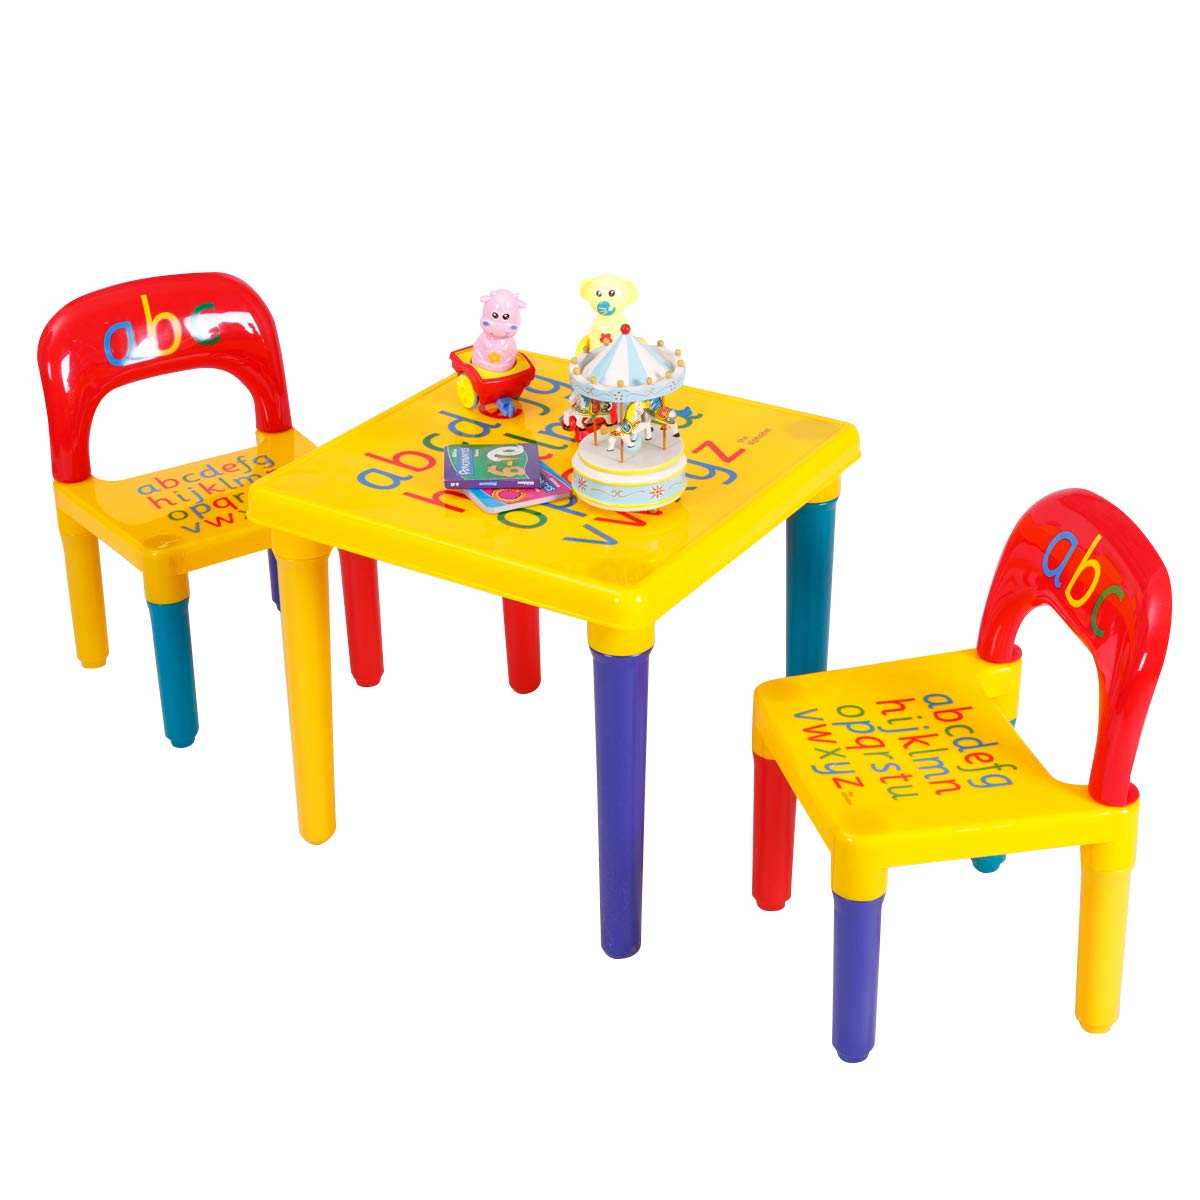 Costzon Kids Table and 2 Chairs Set, Alphabetic Letter Table Furniture for Toddlers, Education Learning Activity Table Desk Sets FWAM-01748